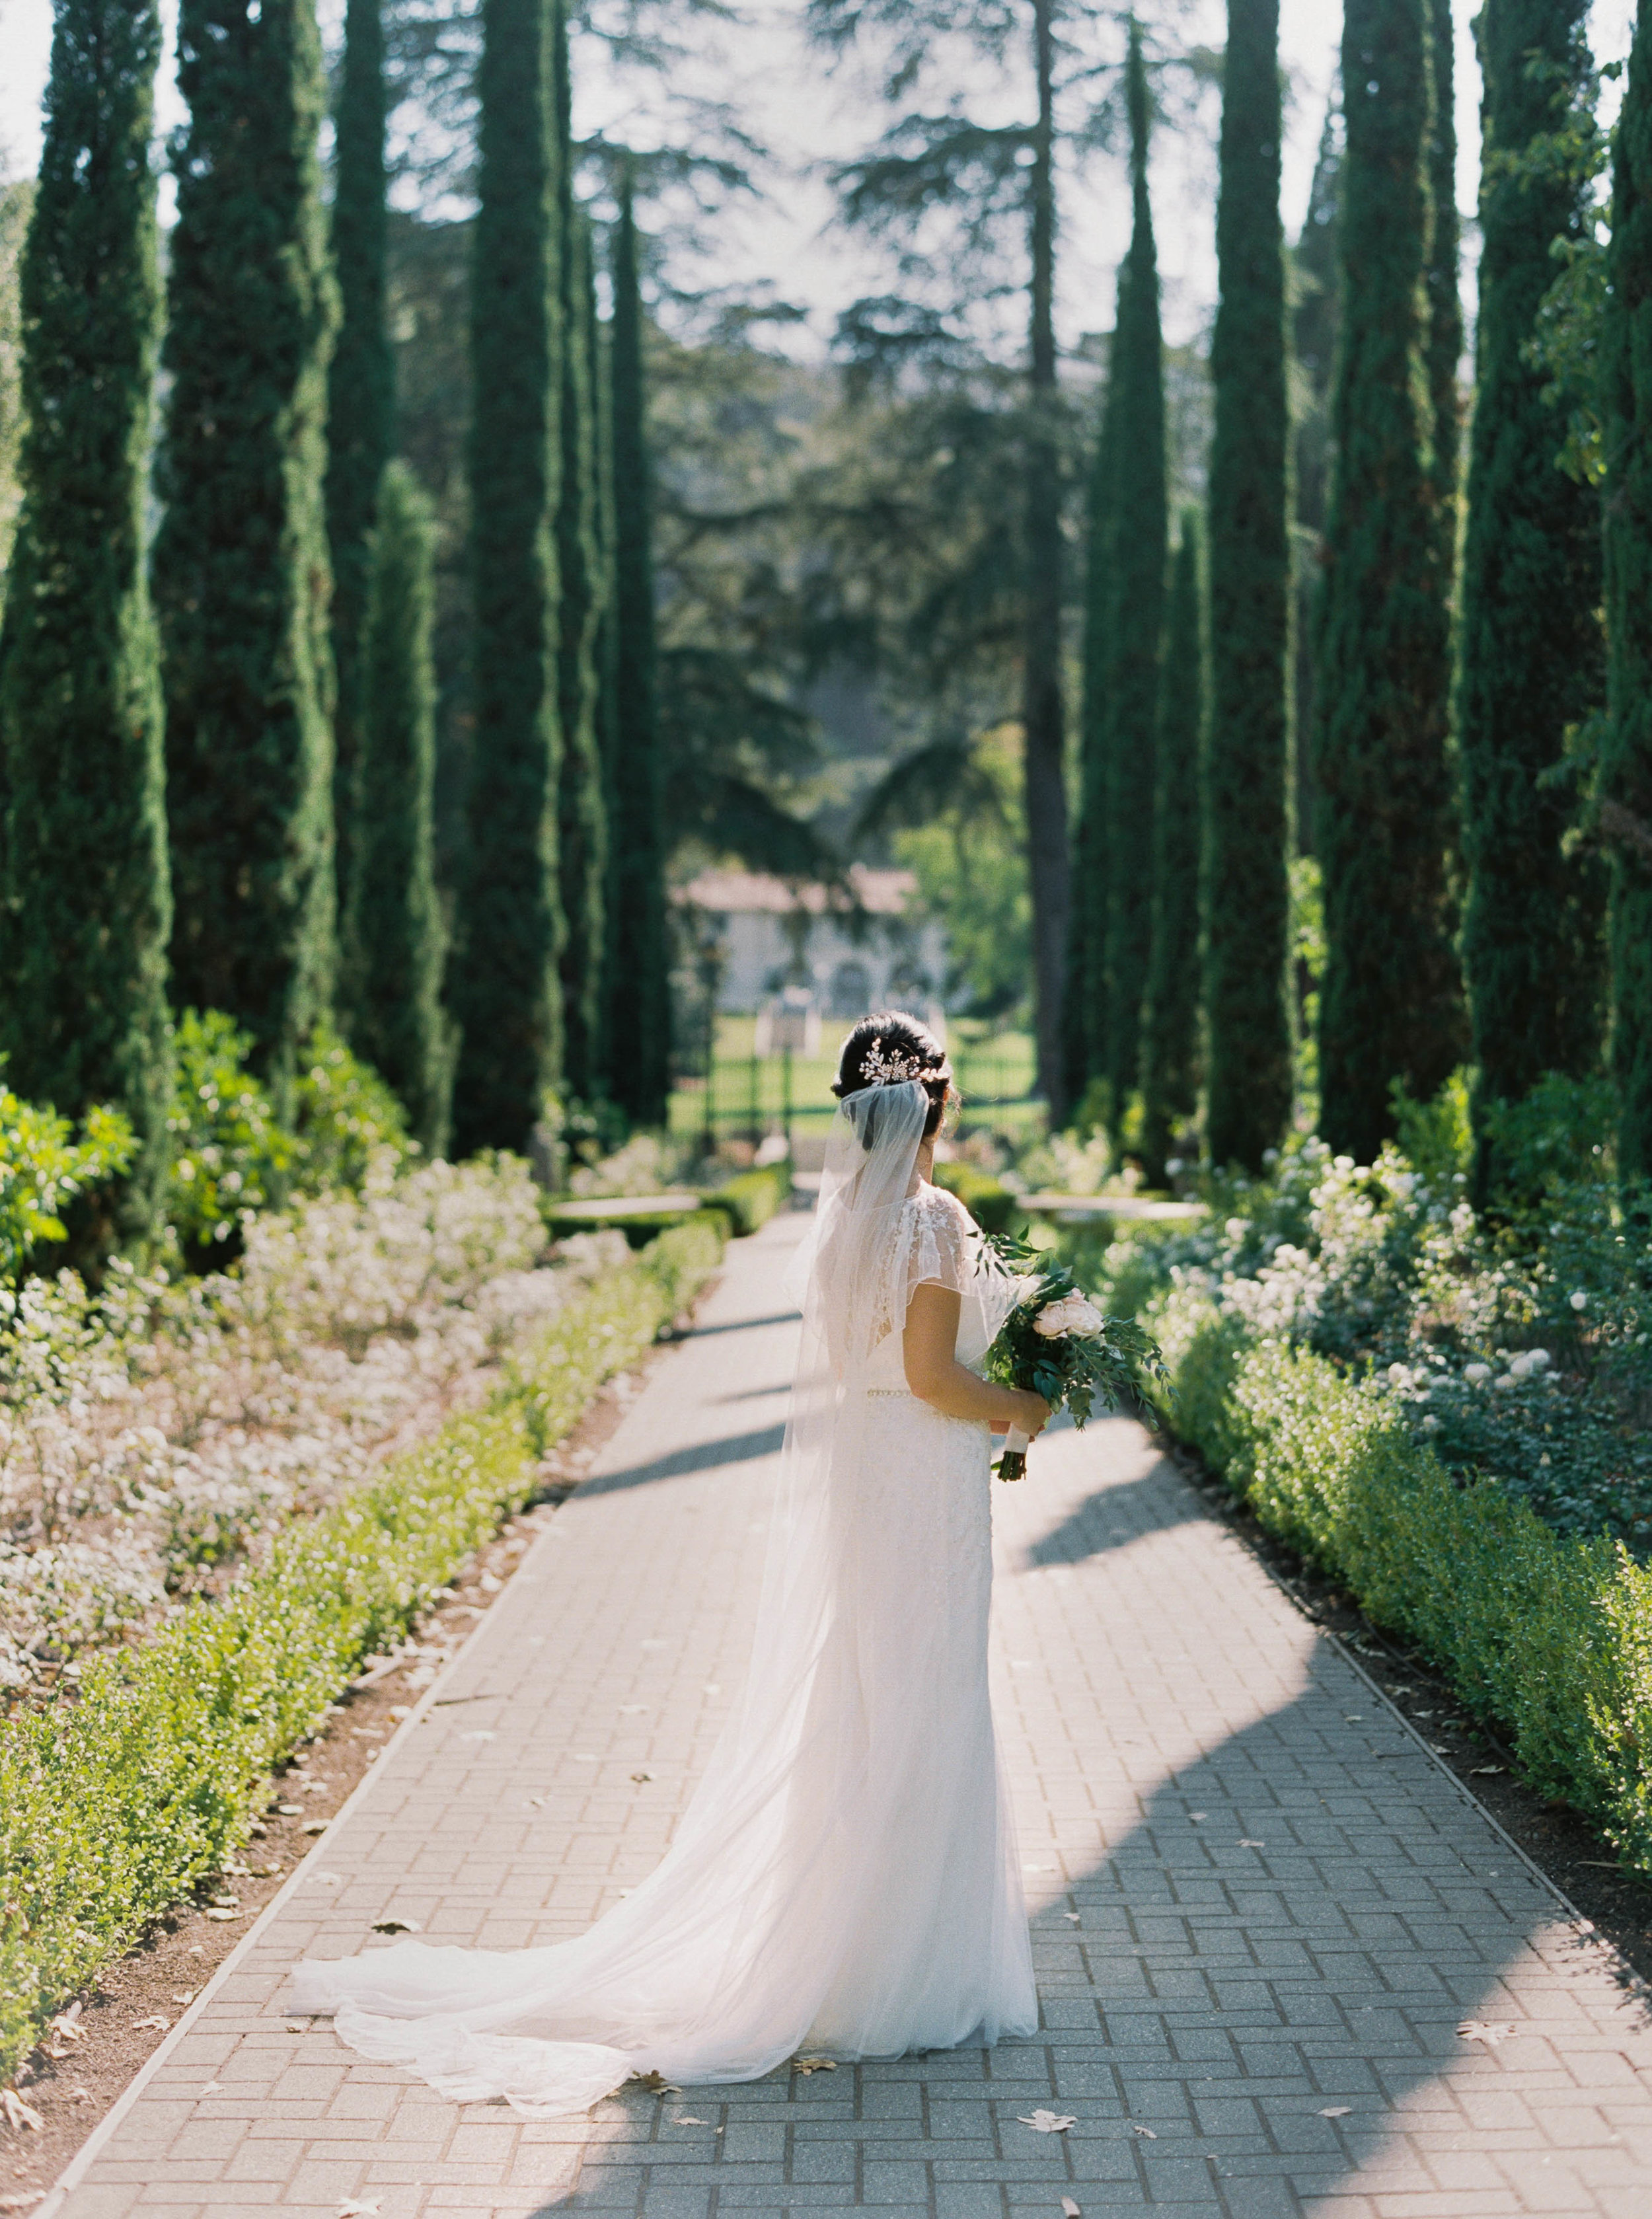 Villa_Montalvo_Wedding_Photographer_Videographer_San_Francisco080.jpg